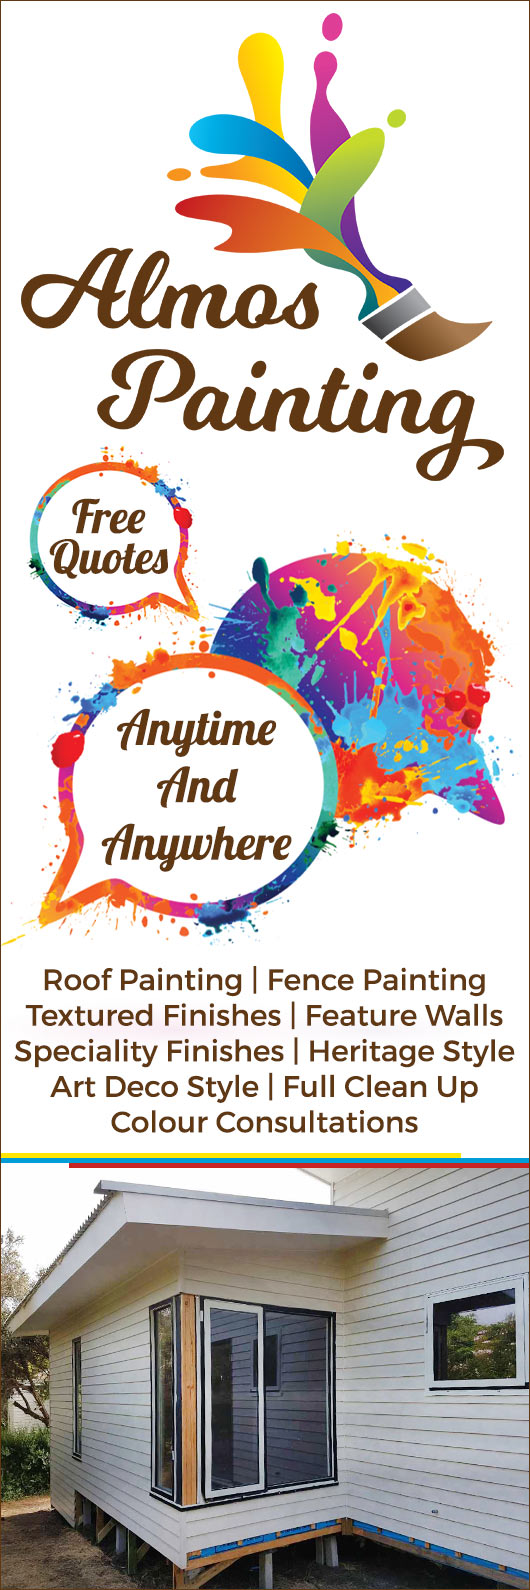 Almos Painting - Promotion